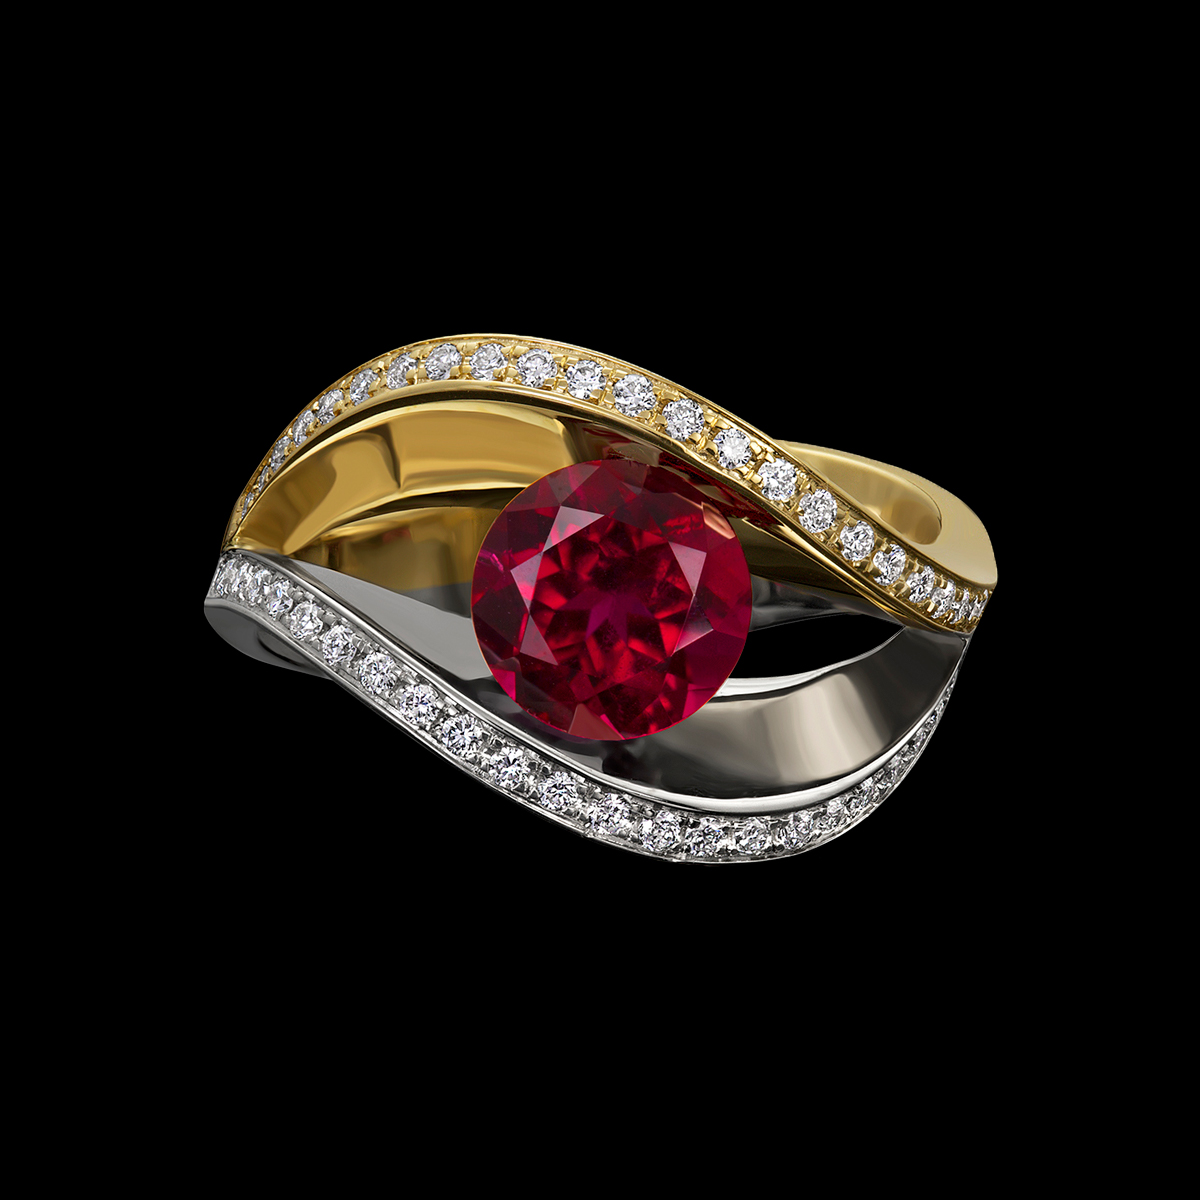 covet duo rubellite tourmaline ring